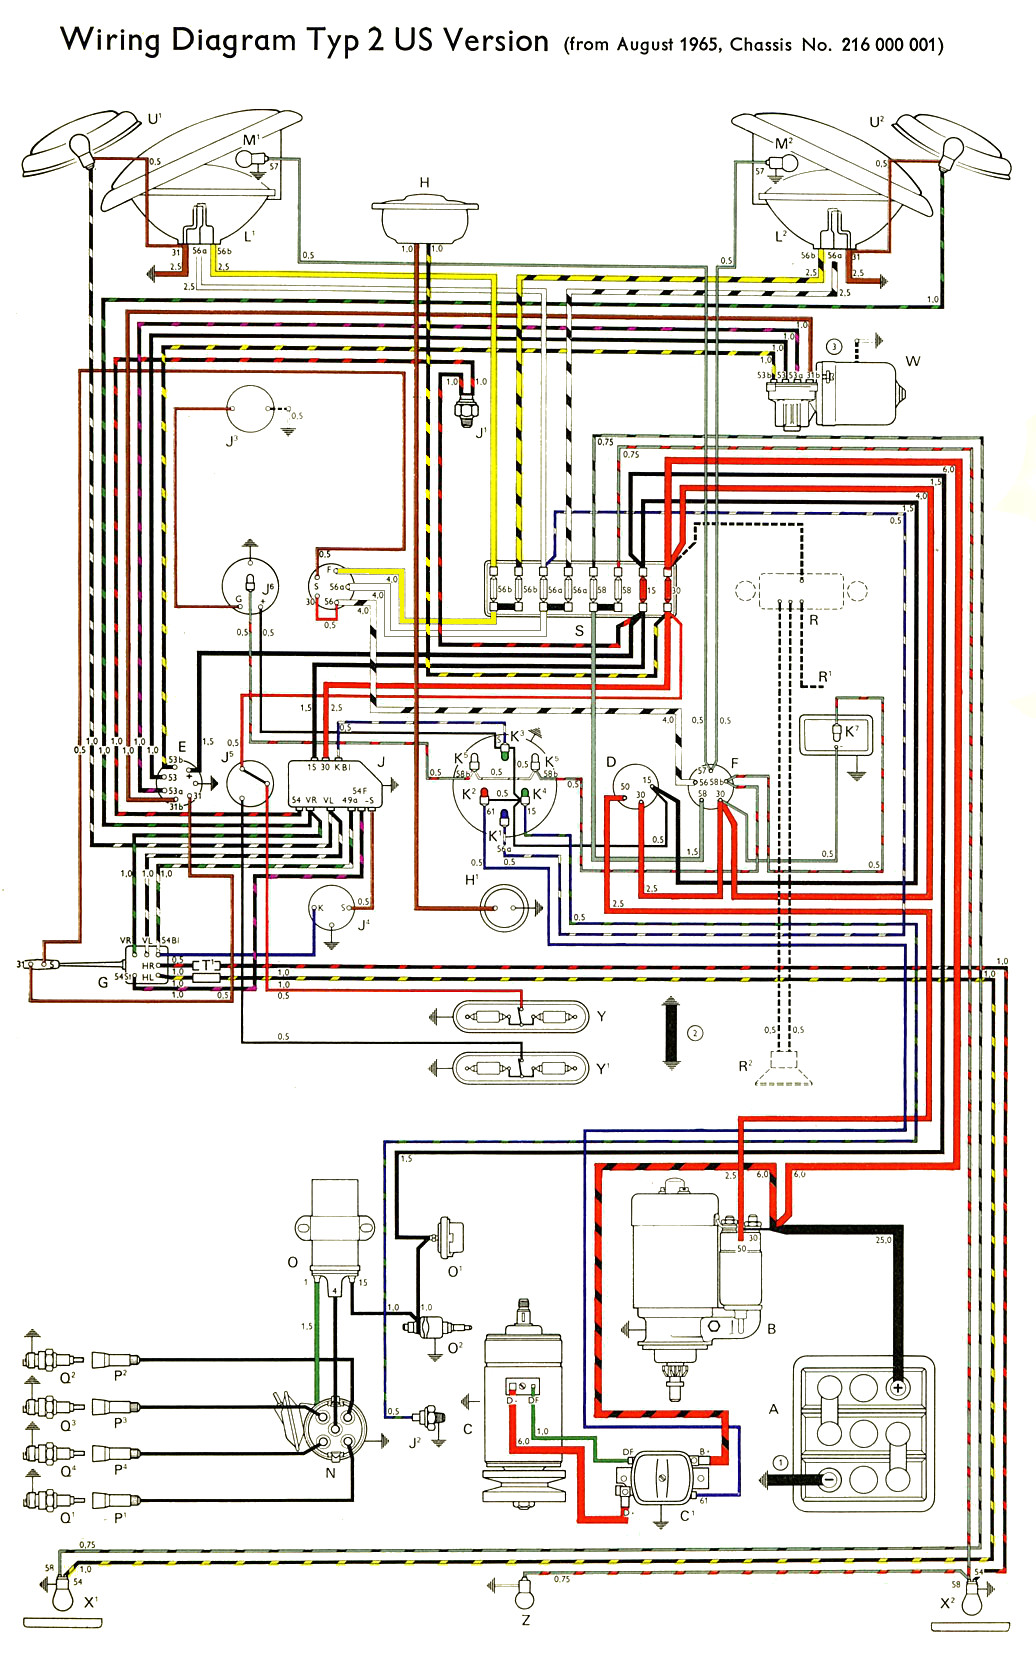 66 Cadillac Wiring Diagram Schematic Not Lossing Sts Fan Thesamba Com Type 2 Diagrams 1999 Seville 2005 Schematics